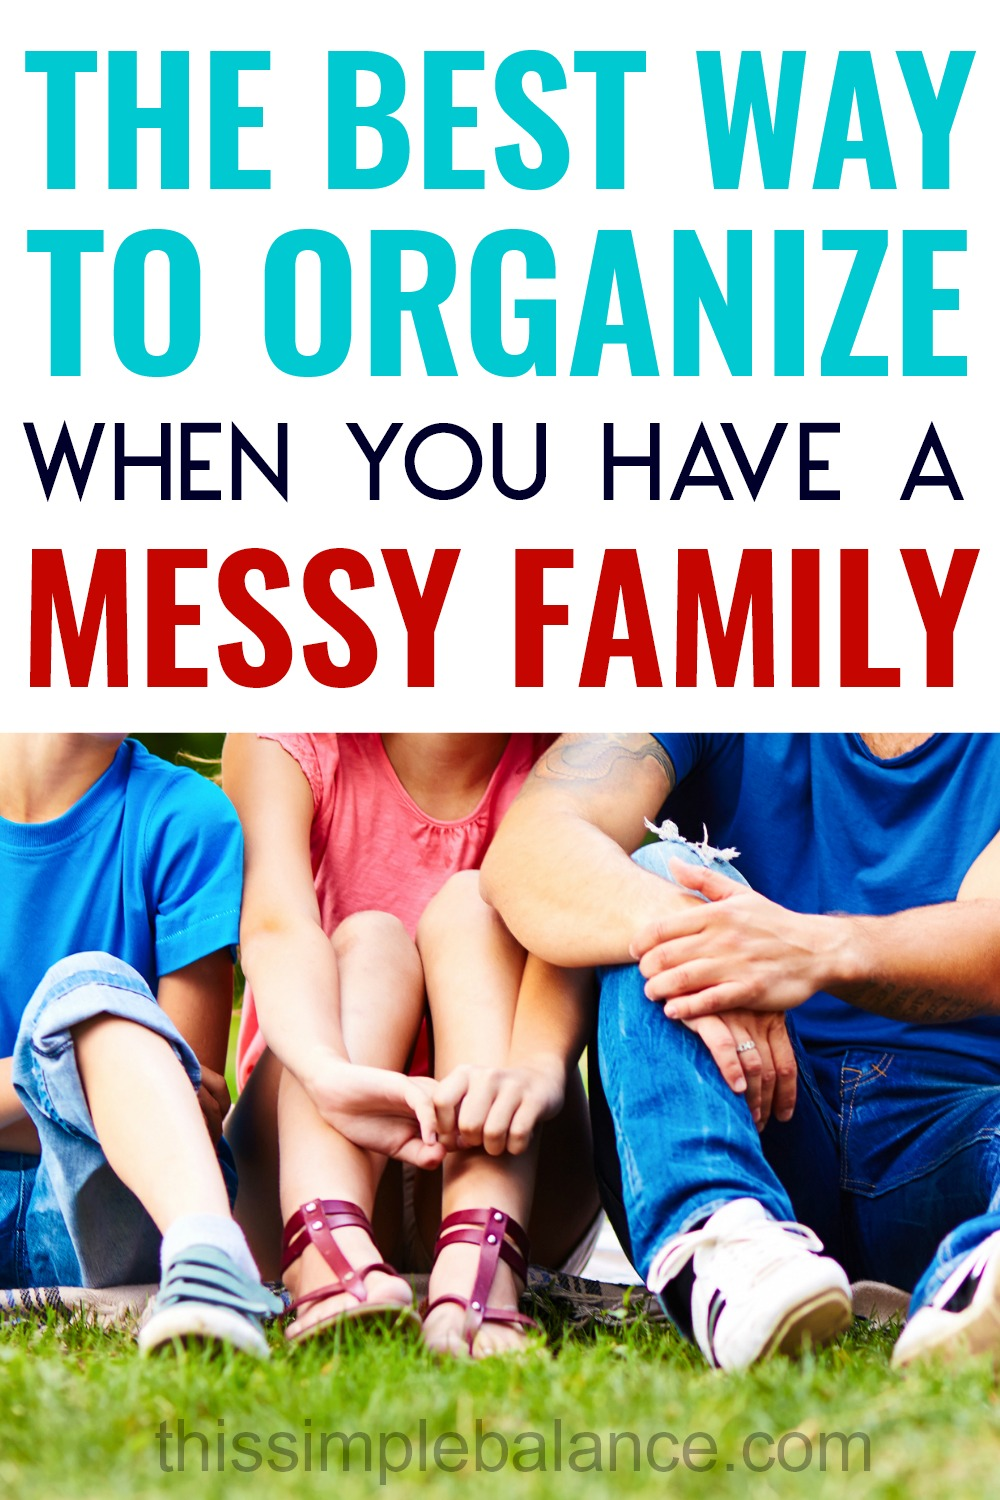 Organization ideas for the home when you have kids (and maybe a husband) who won't work with your systems. Tips and tricks for choosing the best organization systems they can follow. #organization #organizationwithkids #cleaning